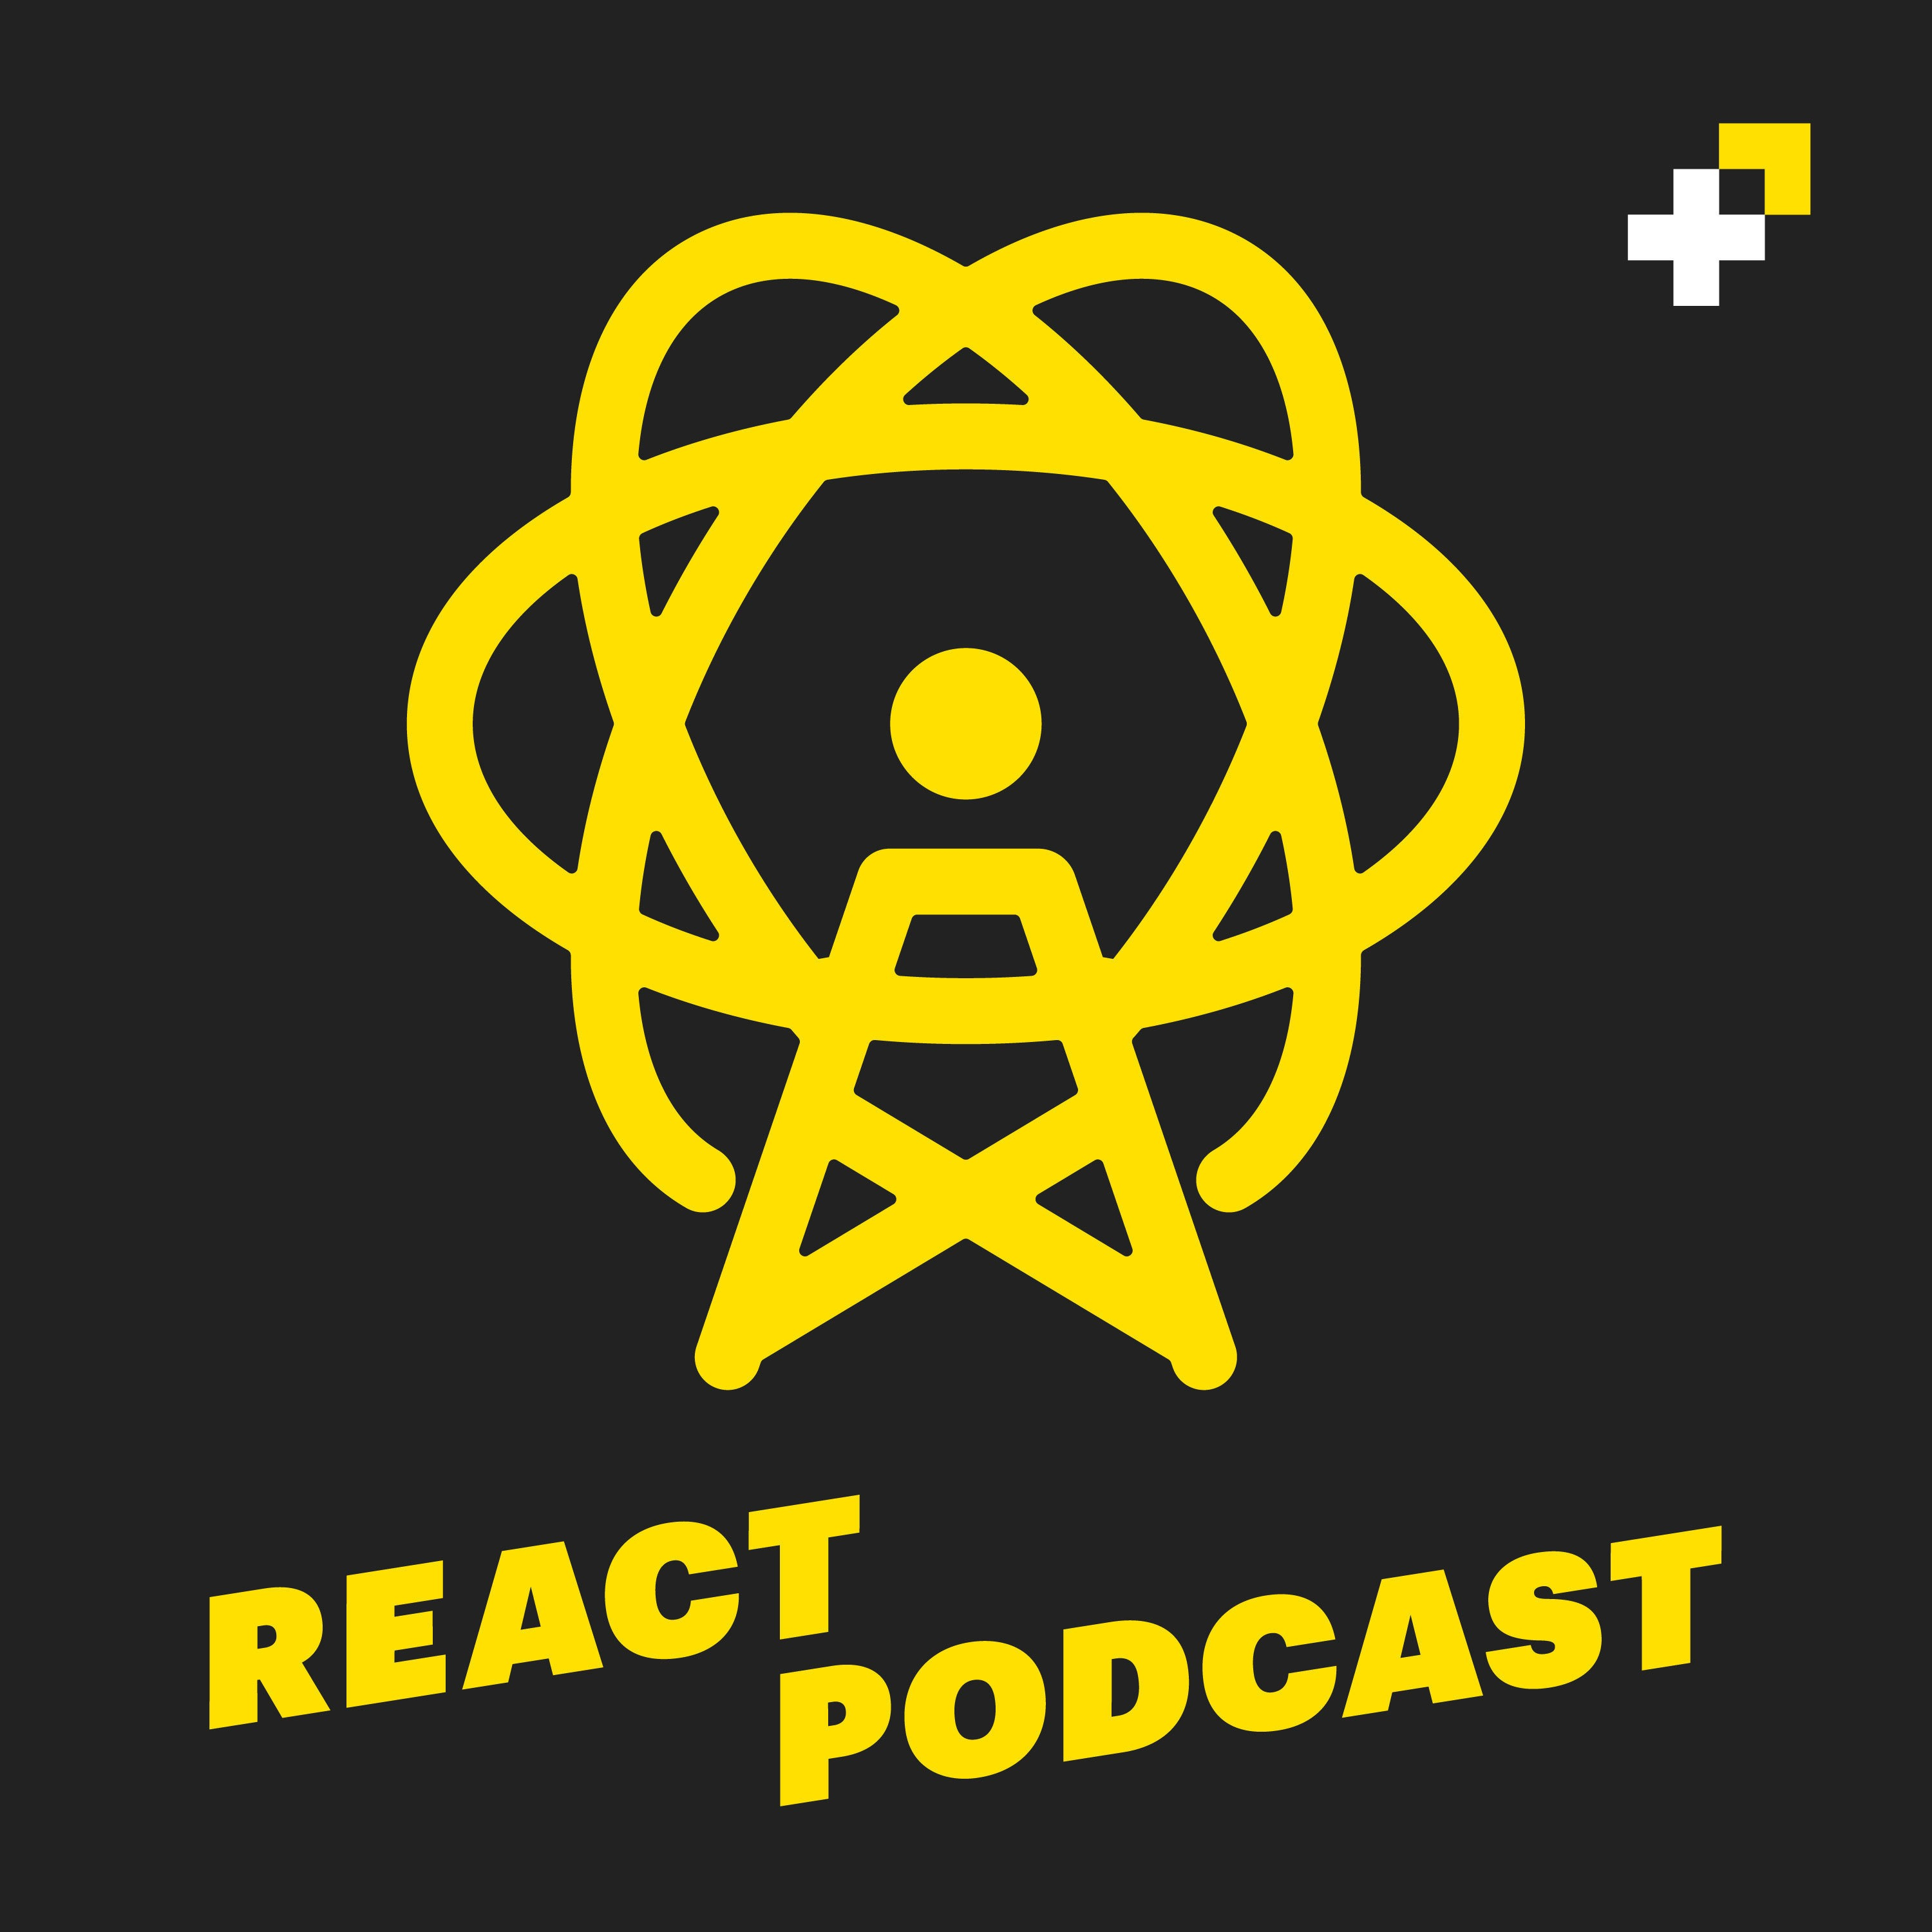 Most recent podcast [React Podcast]